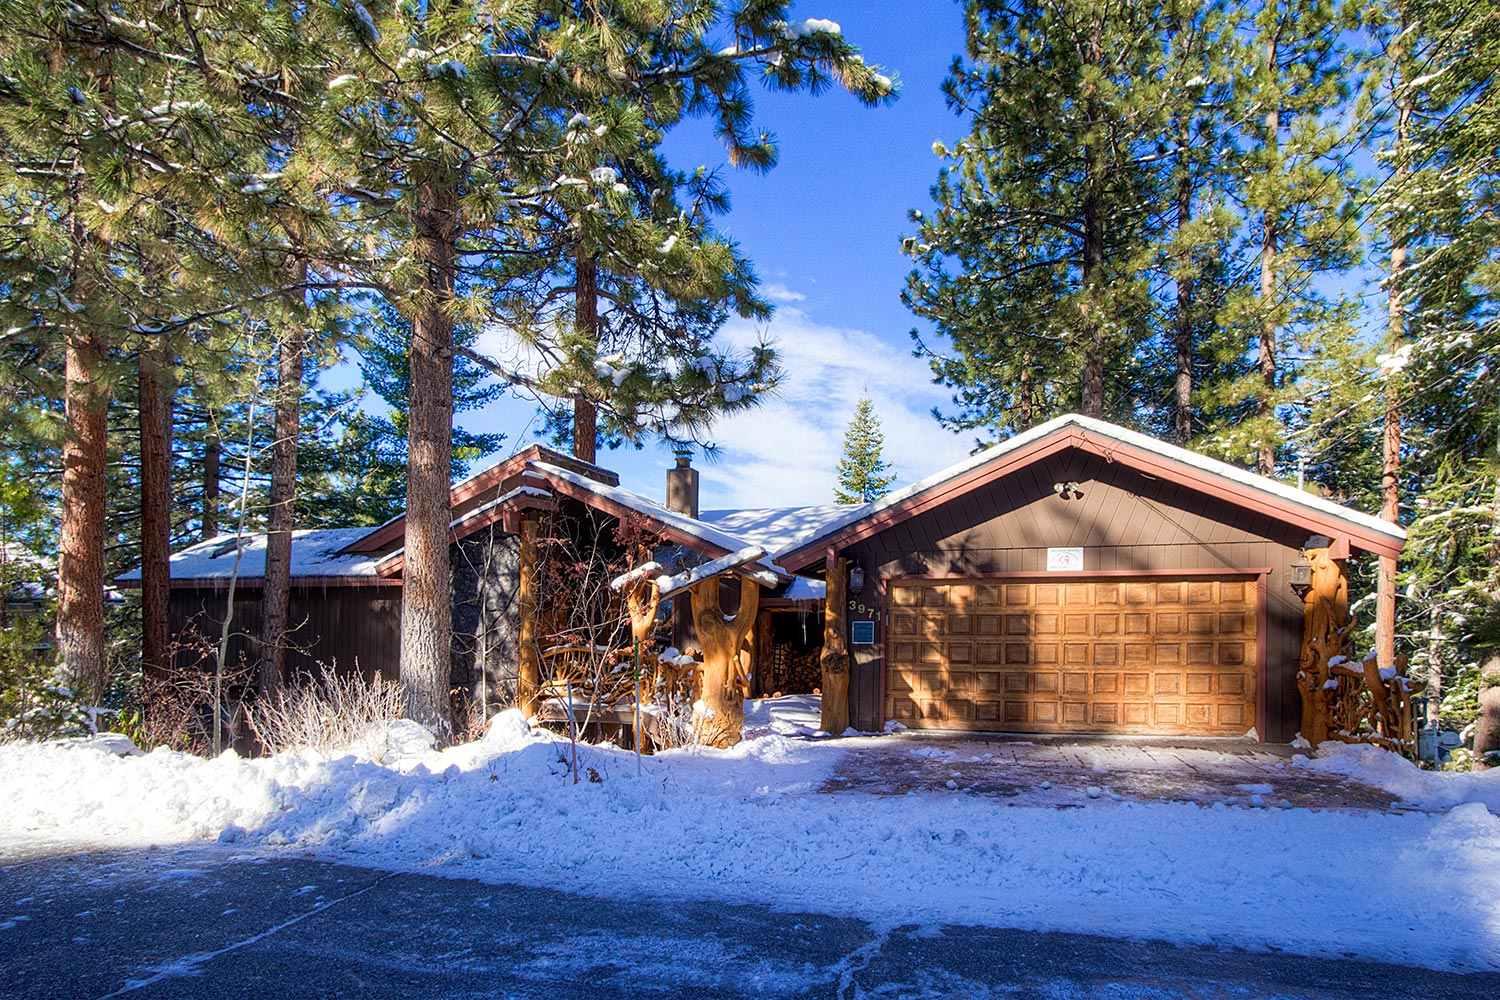 Heavenly tree house at lake tahoe ra45084 redawning Rent a cabin in lake tahoe ca